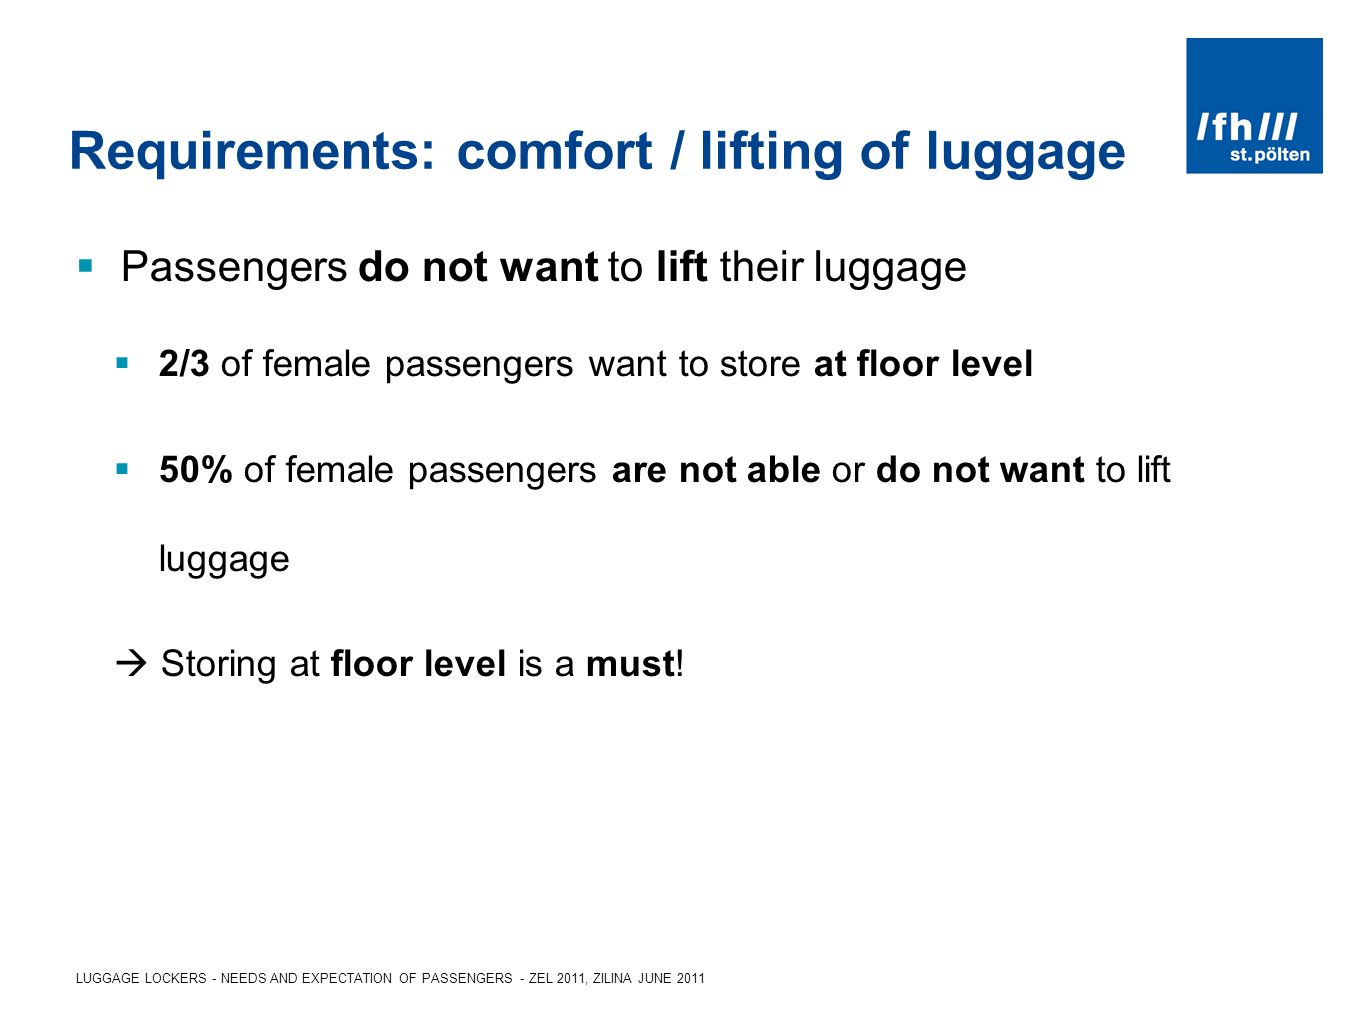 LUGGAGE LOCKERS - NEEDS AND EXPECTATION OF PASSENGERS - ZEL 2011, ZILINA JUNE 2011 Requirements: comfort / lifting of luggage Passengers do not want to lift their luggage 2/3 of female passengers want to store at floor level 50% of female passengers are not able or do not want to lift luggage Storing at floor level is a must!